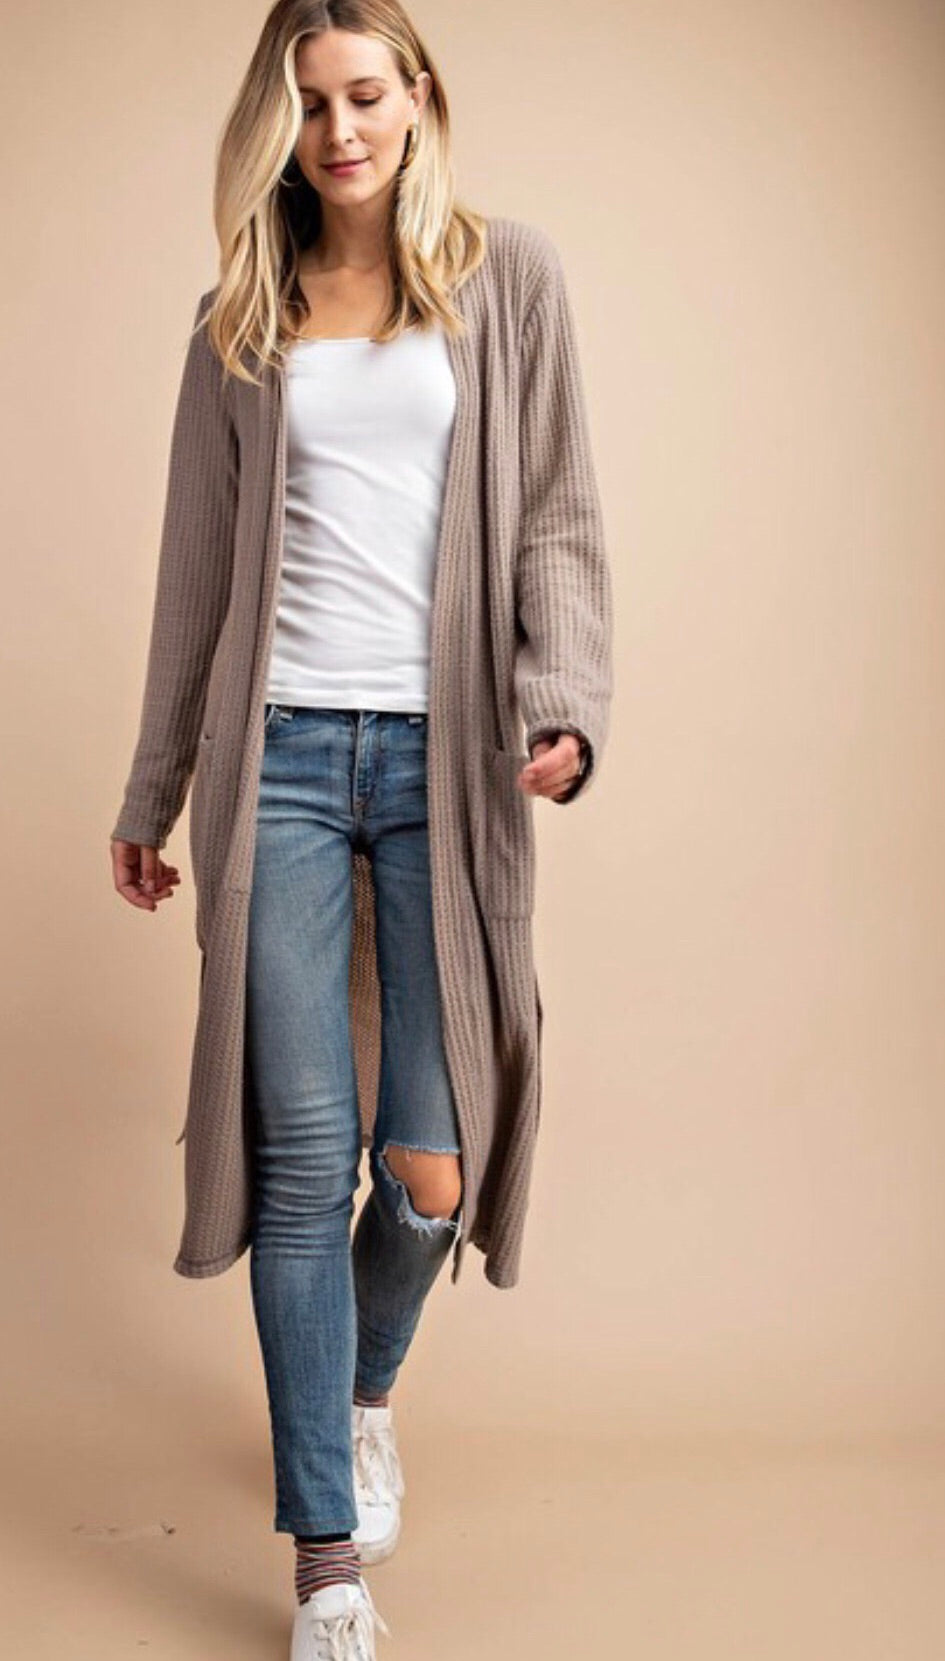 Mocha Brushed Waffleknit Cardigan